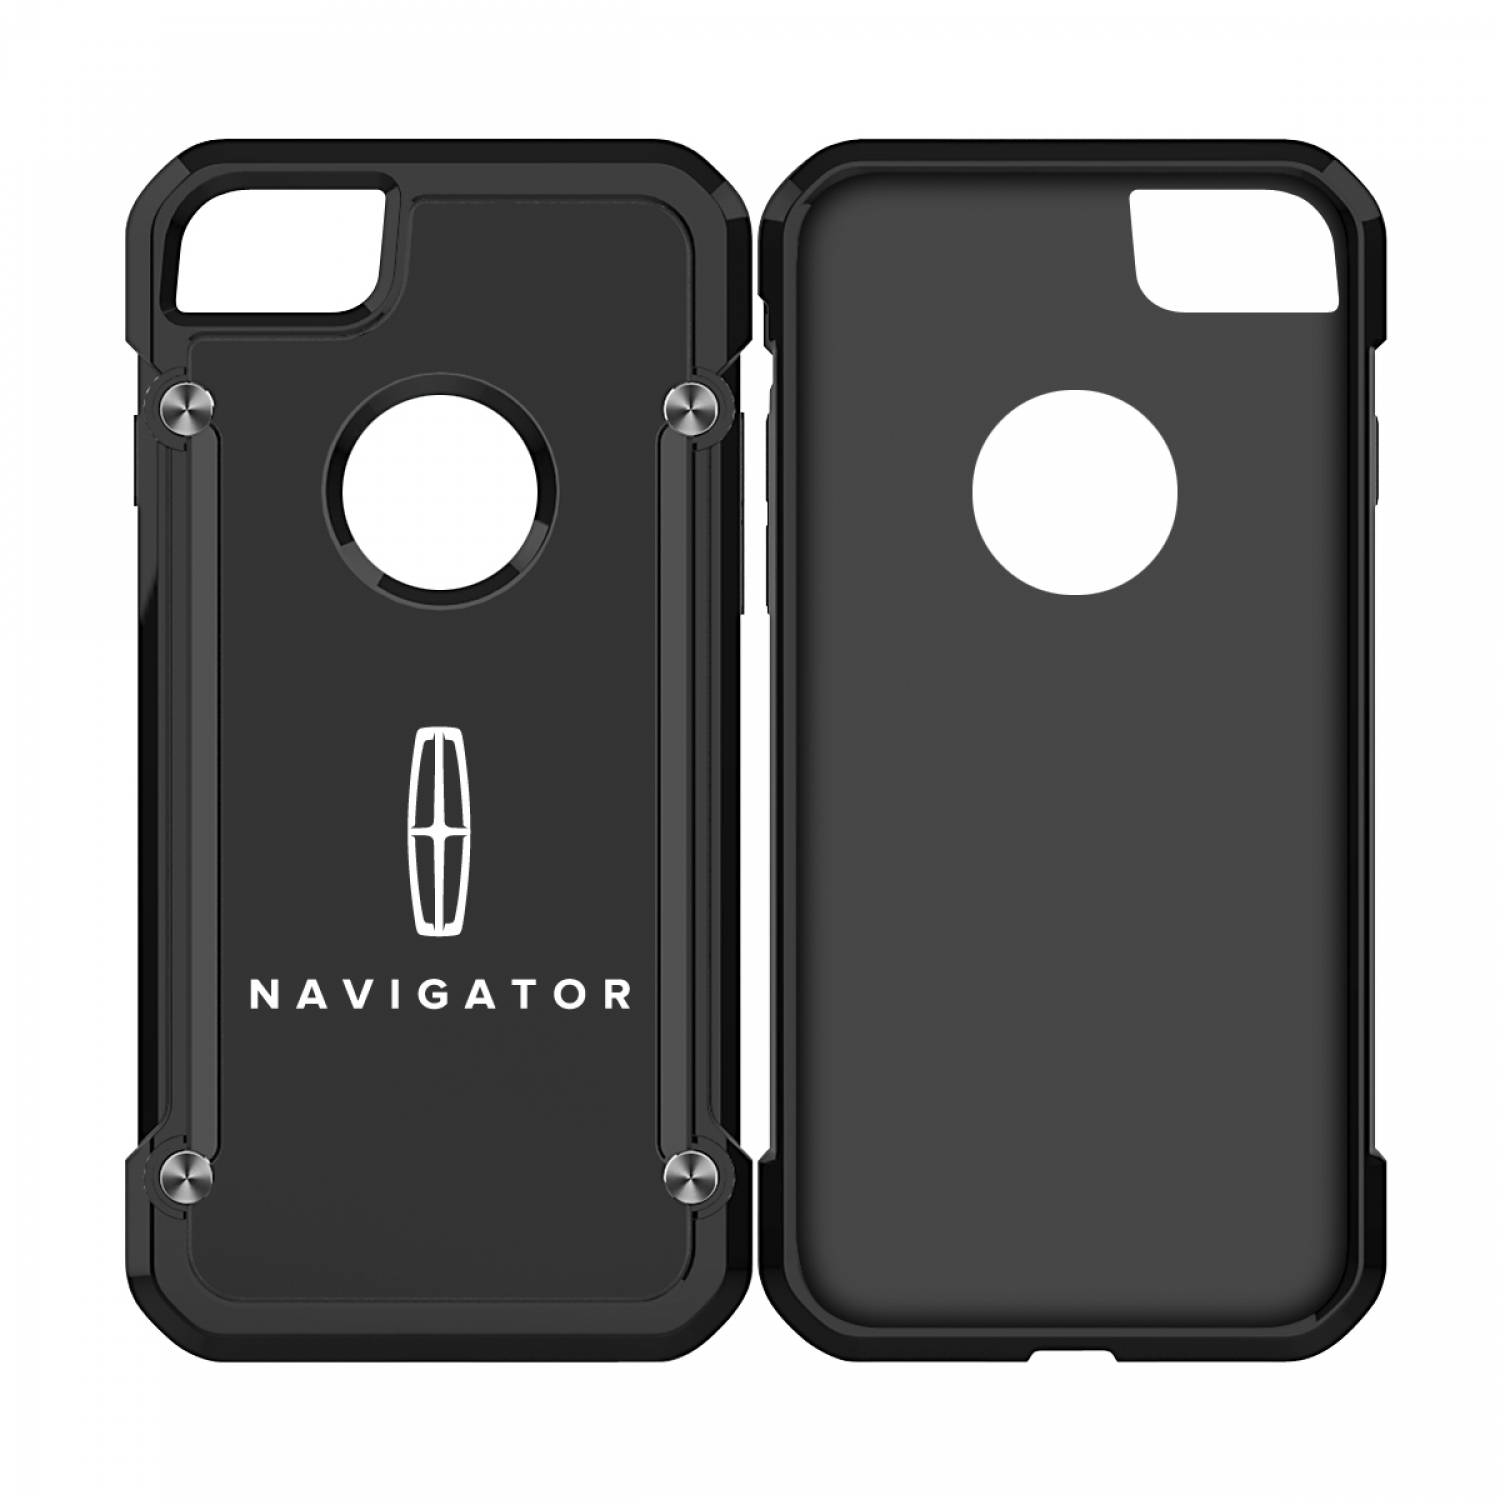 Lincoln Navigator iPhone 7 iPhone 8 TPU Shockproof Black Cell Phone Case